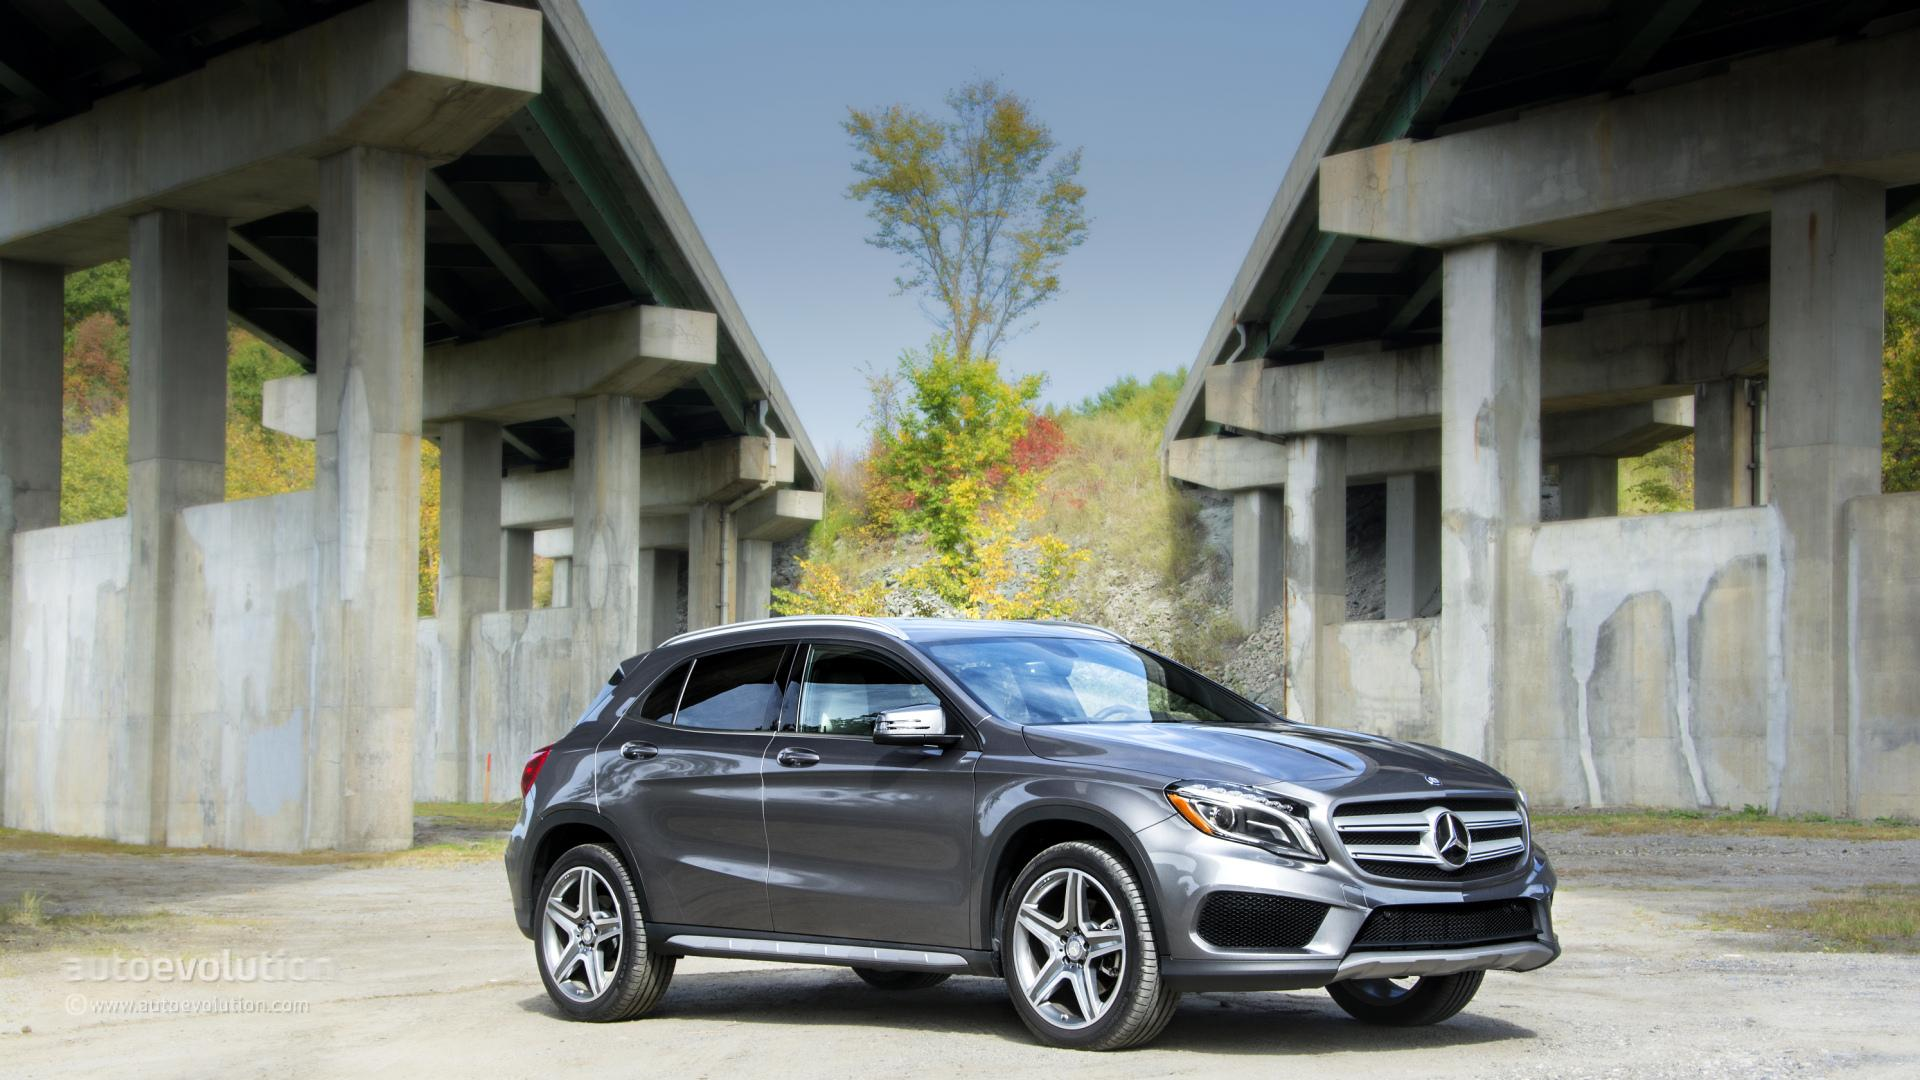 Mercedes-Benz GLA-Class Wallpaper 4 - 1920 X 1080 | stmed.net